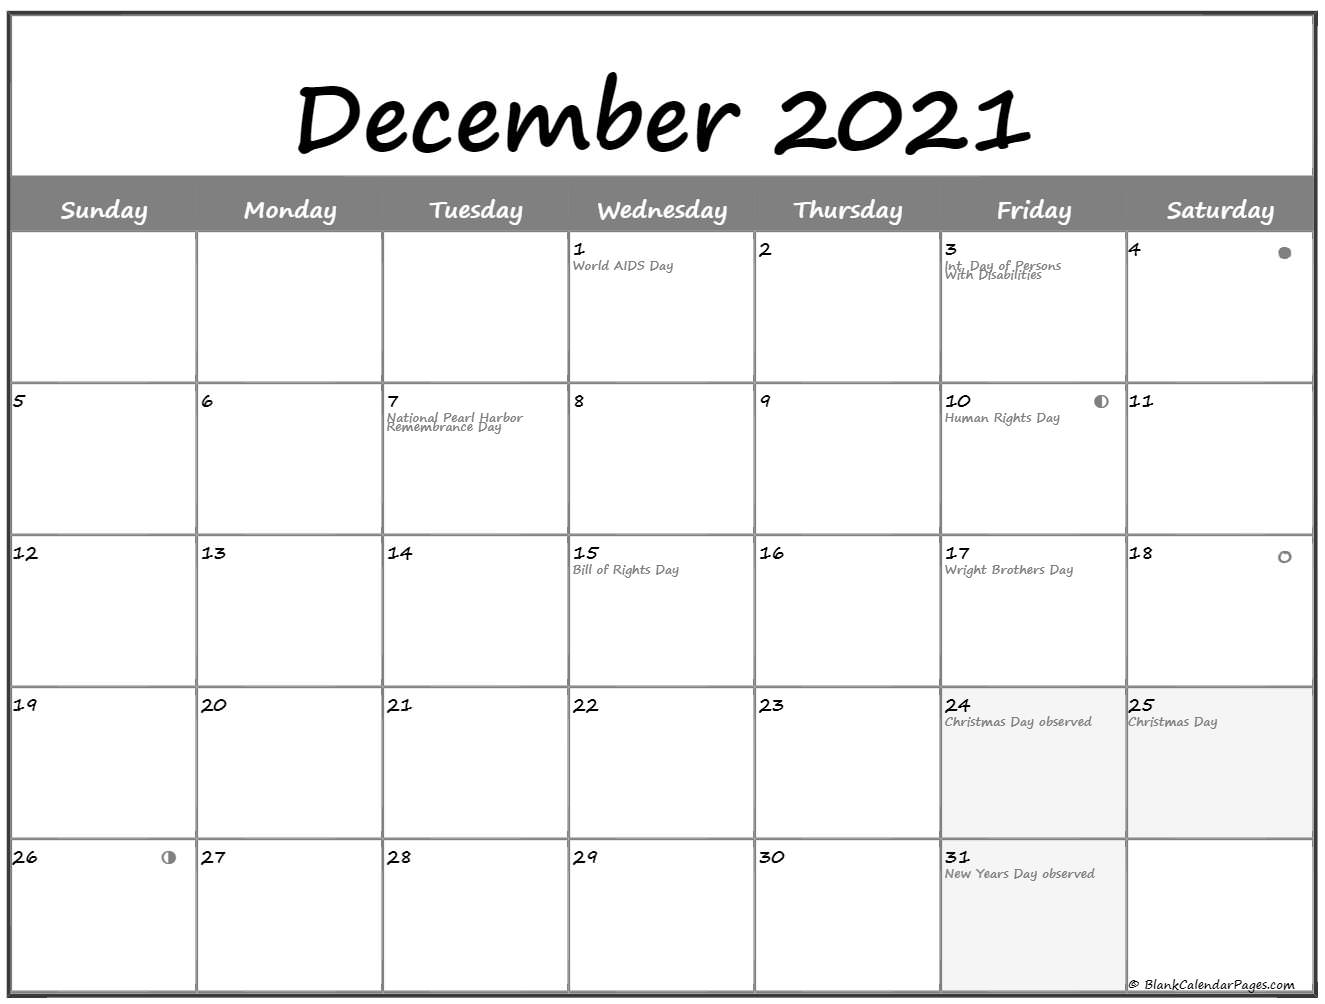 December 2021 Lunar calendar. moon phase calendar with USA holidays